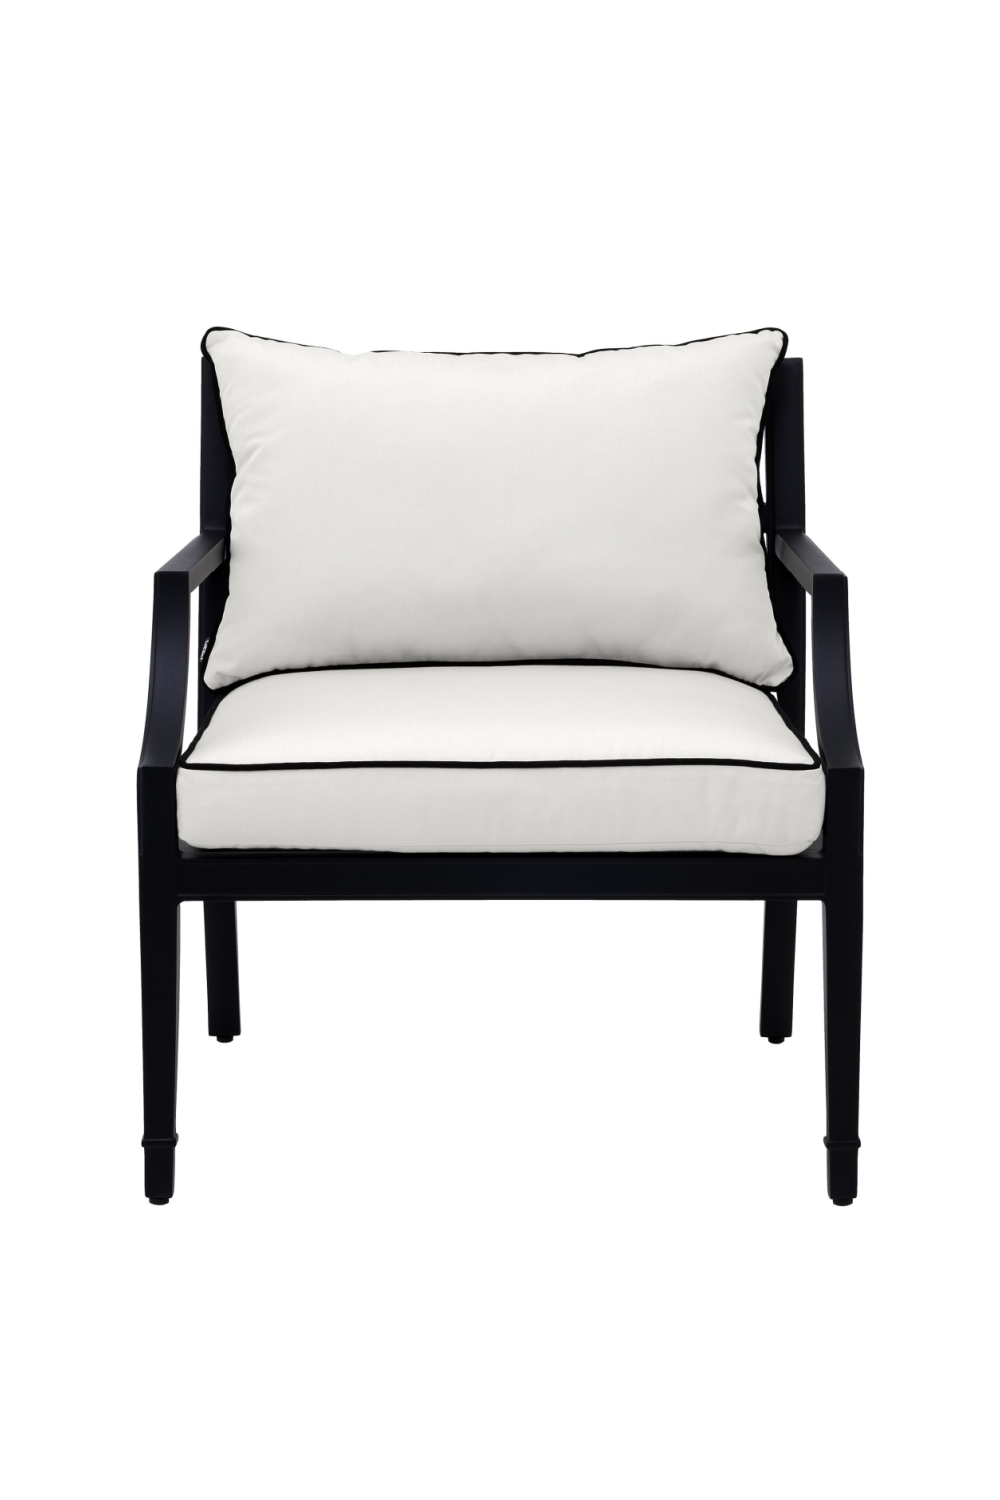 Black Outdoor Sunbrella Chair | Eichholtz Bella Vista